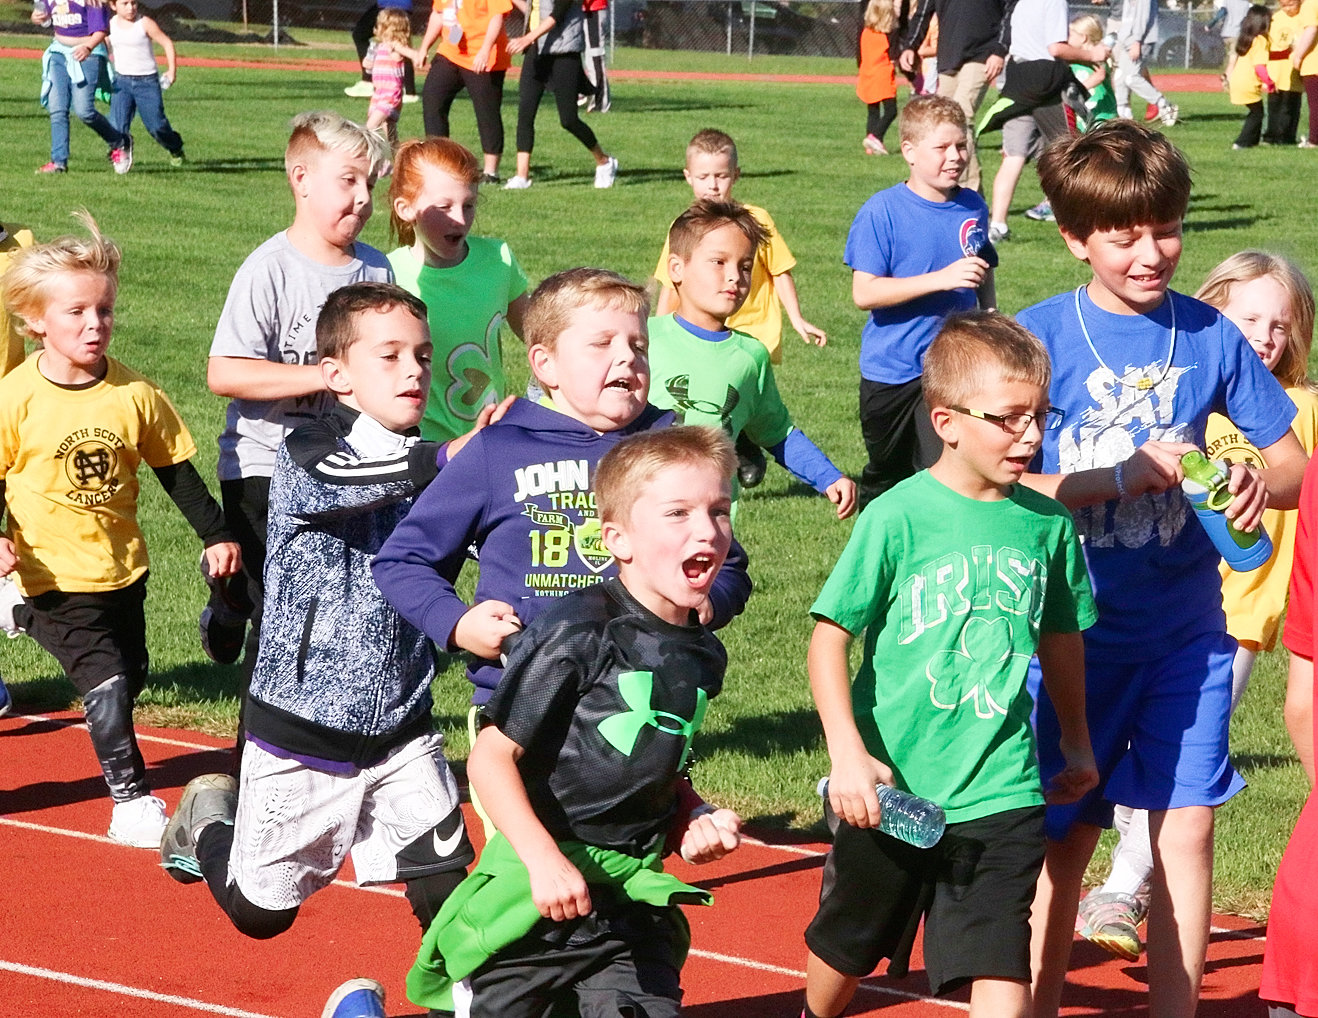 After taking a brief break, these Neil Armstrong students couldn't wait to get back on the track. From left: Cruz Allison, Ian Dexter, Cooper Sebastian, Mackenna Johnston, Jimmy Row (purple shirt), Miles Unwin (front), Olly Lee, Connor Allison (yellow shirt in back), Nick Schryver, Trenton Roe (green shirt), Andrew Row and Julia Krzyzanowski.